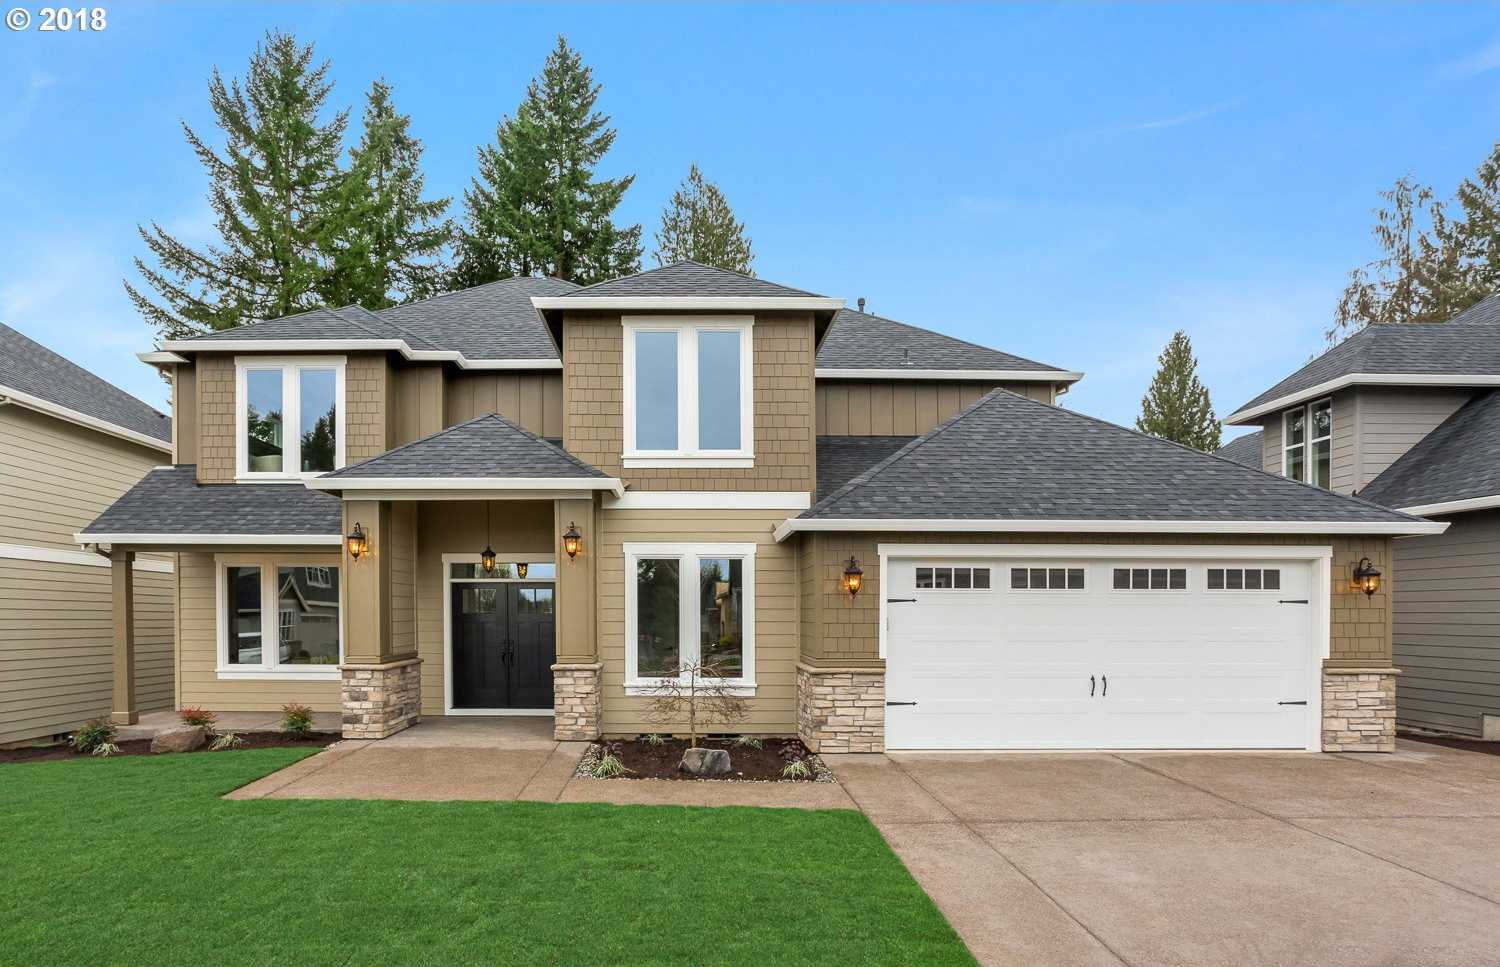 $879,000 - 4Br/3Ba -  for Sale in Tigard